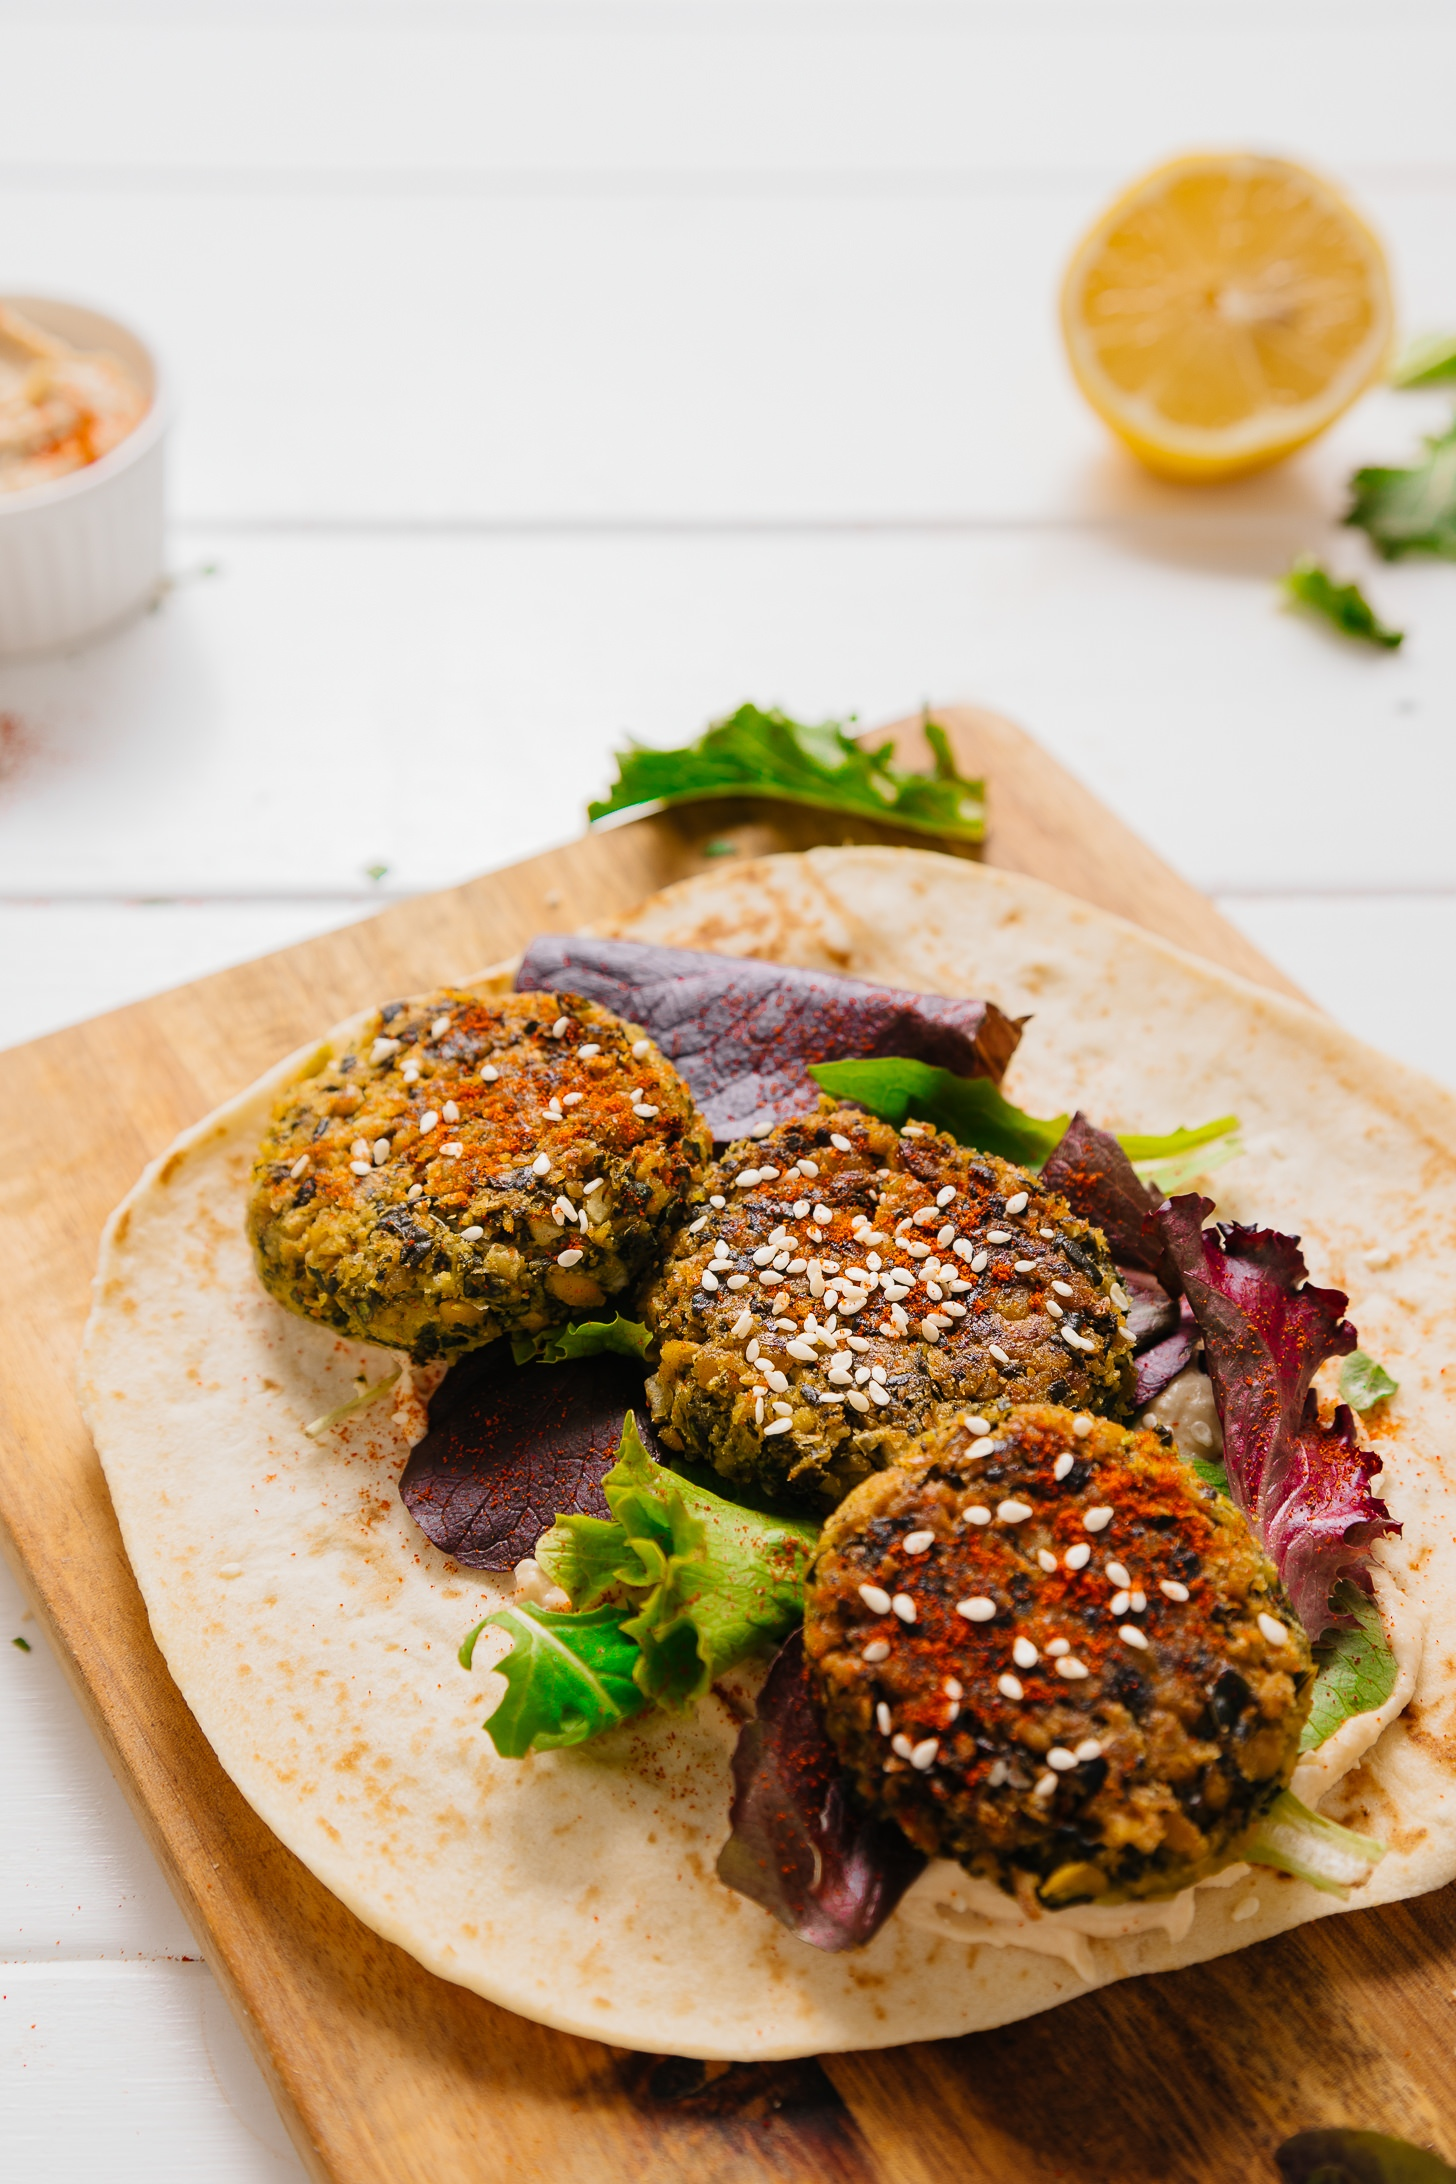 Cutting board with pita bread topped with greens and falafel made with kale